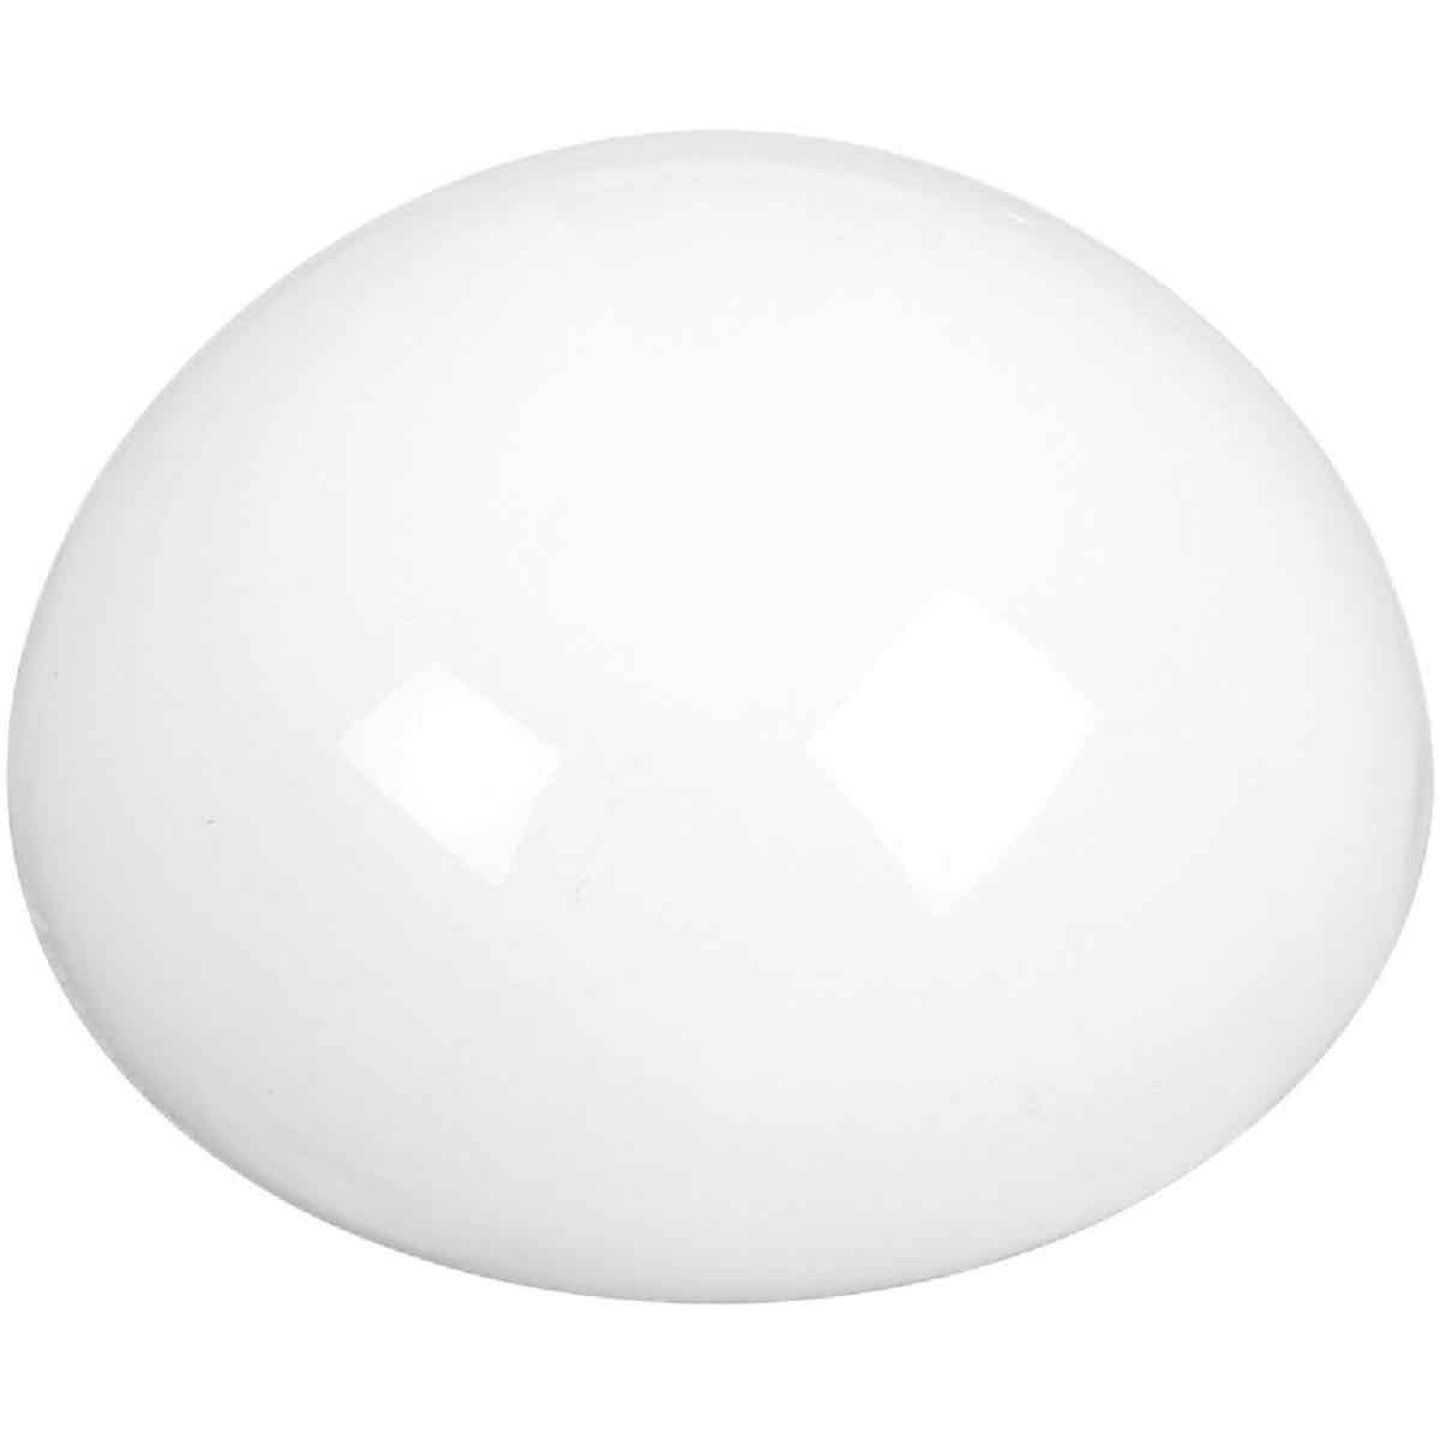 National 337 White Softstop Wall Door Stop (2-Count) Image 1